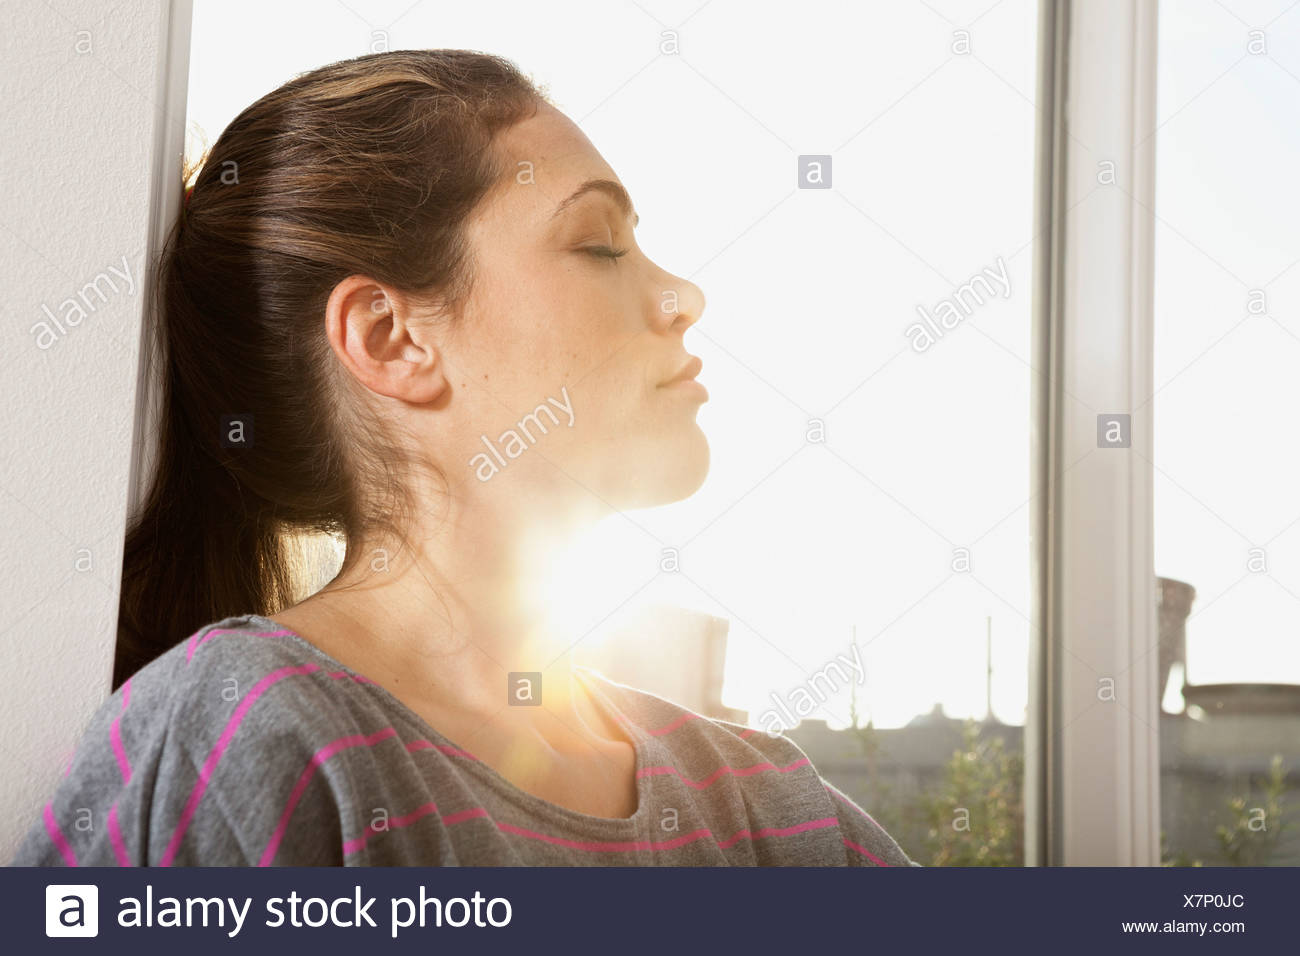 Portrait of woman standing at open window - Stock Image